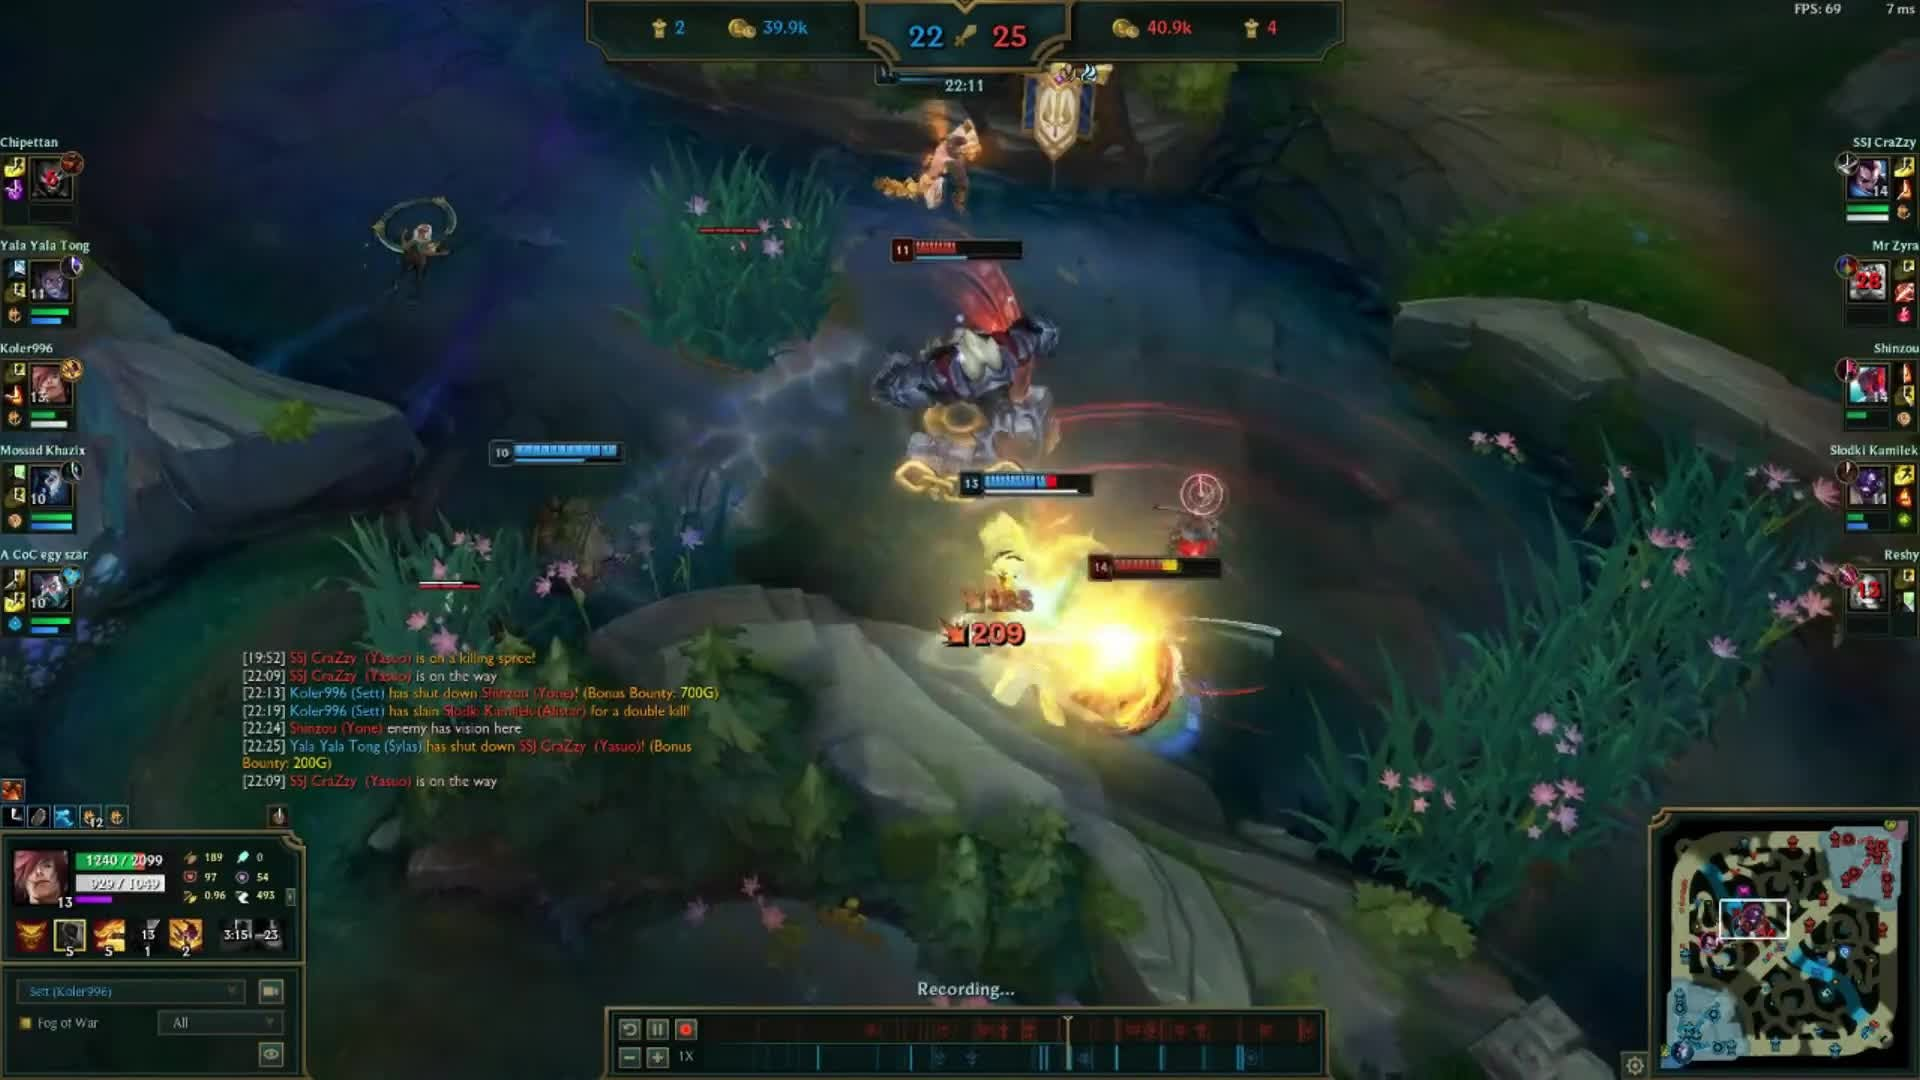 League of Legends: General - Nothing special but I enjoyed the catch at the end video cover image 0